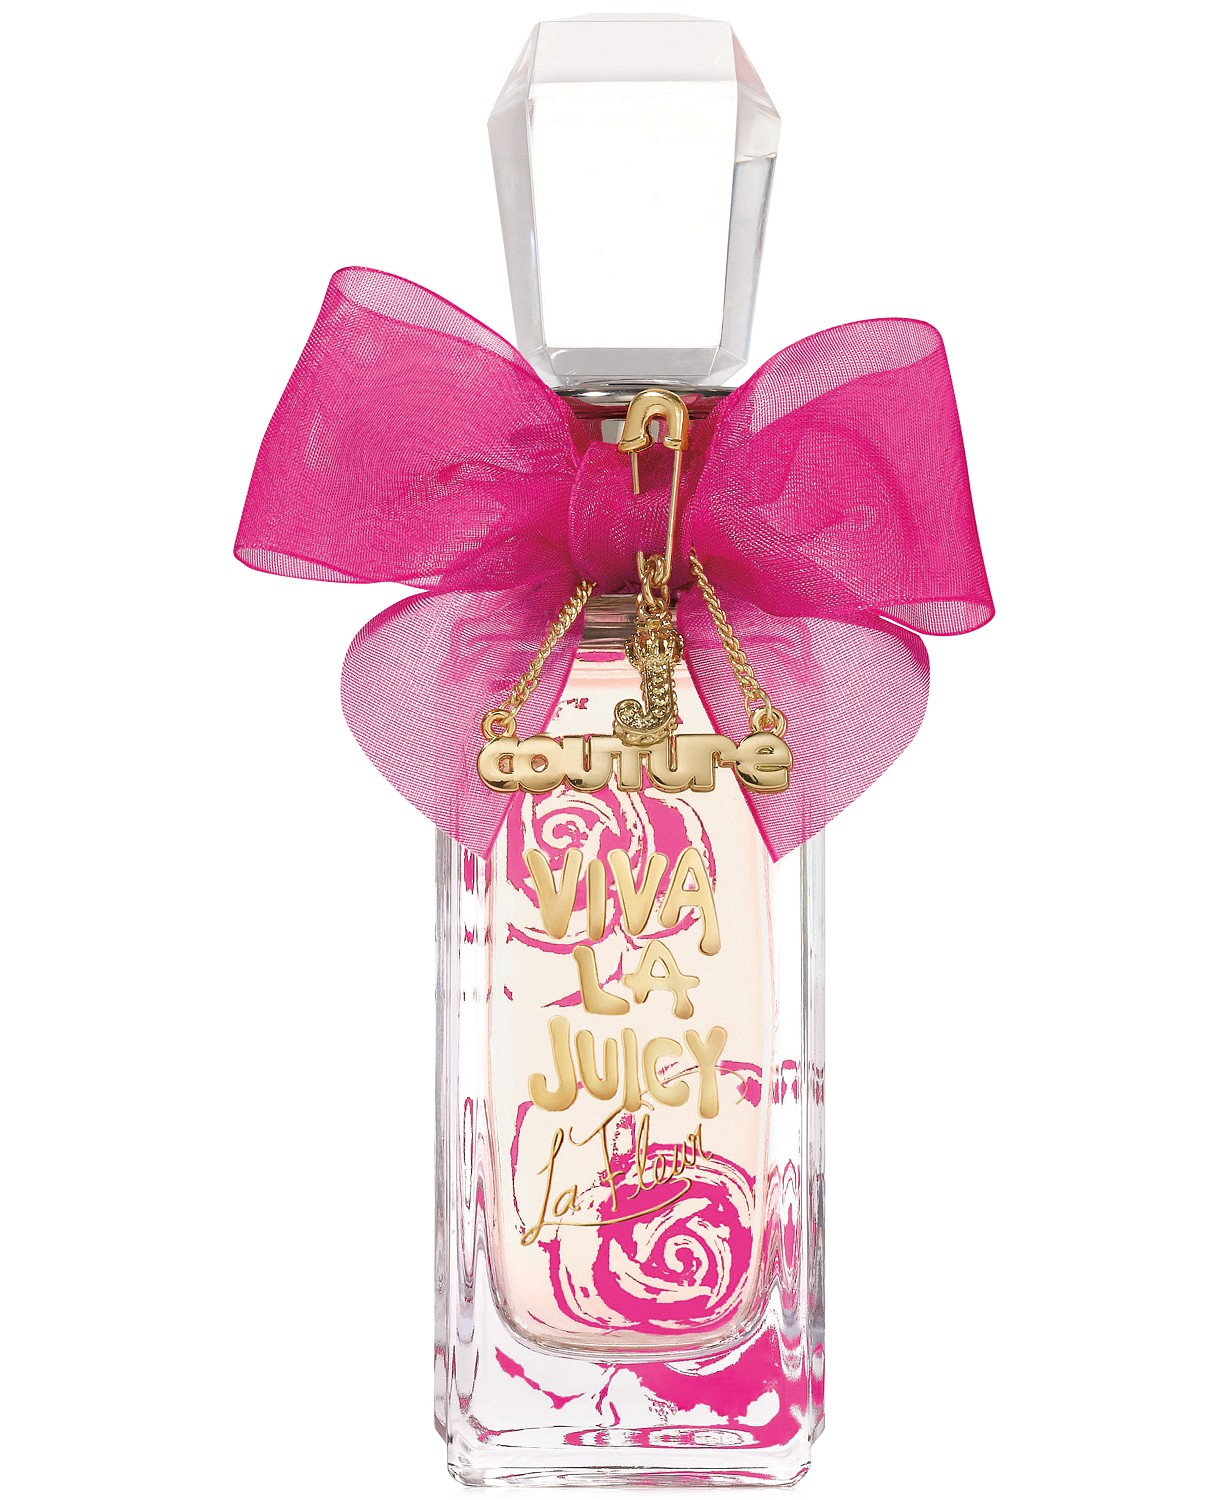 Save 50% on Juicy Couture Viva La Juicy La Fleur Eau de Toilette Spray, 2.5-oz.